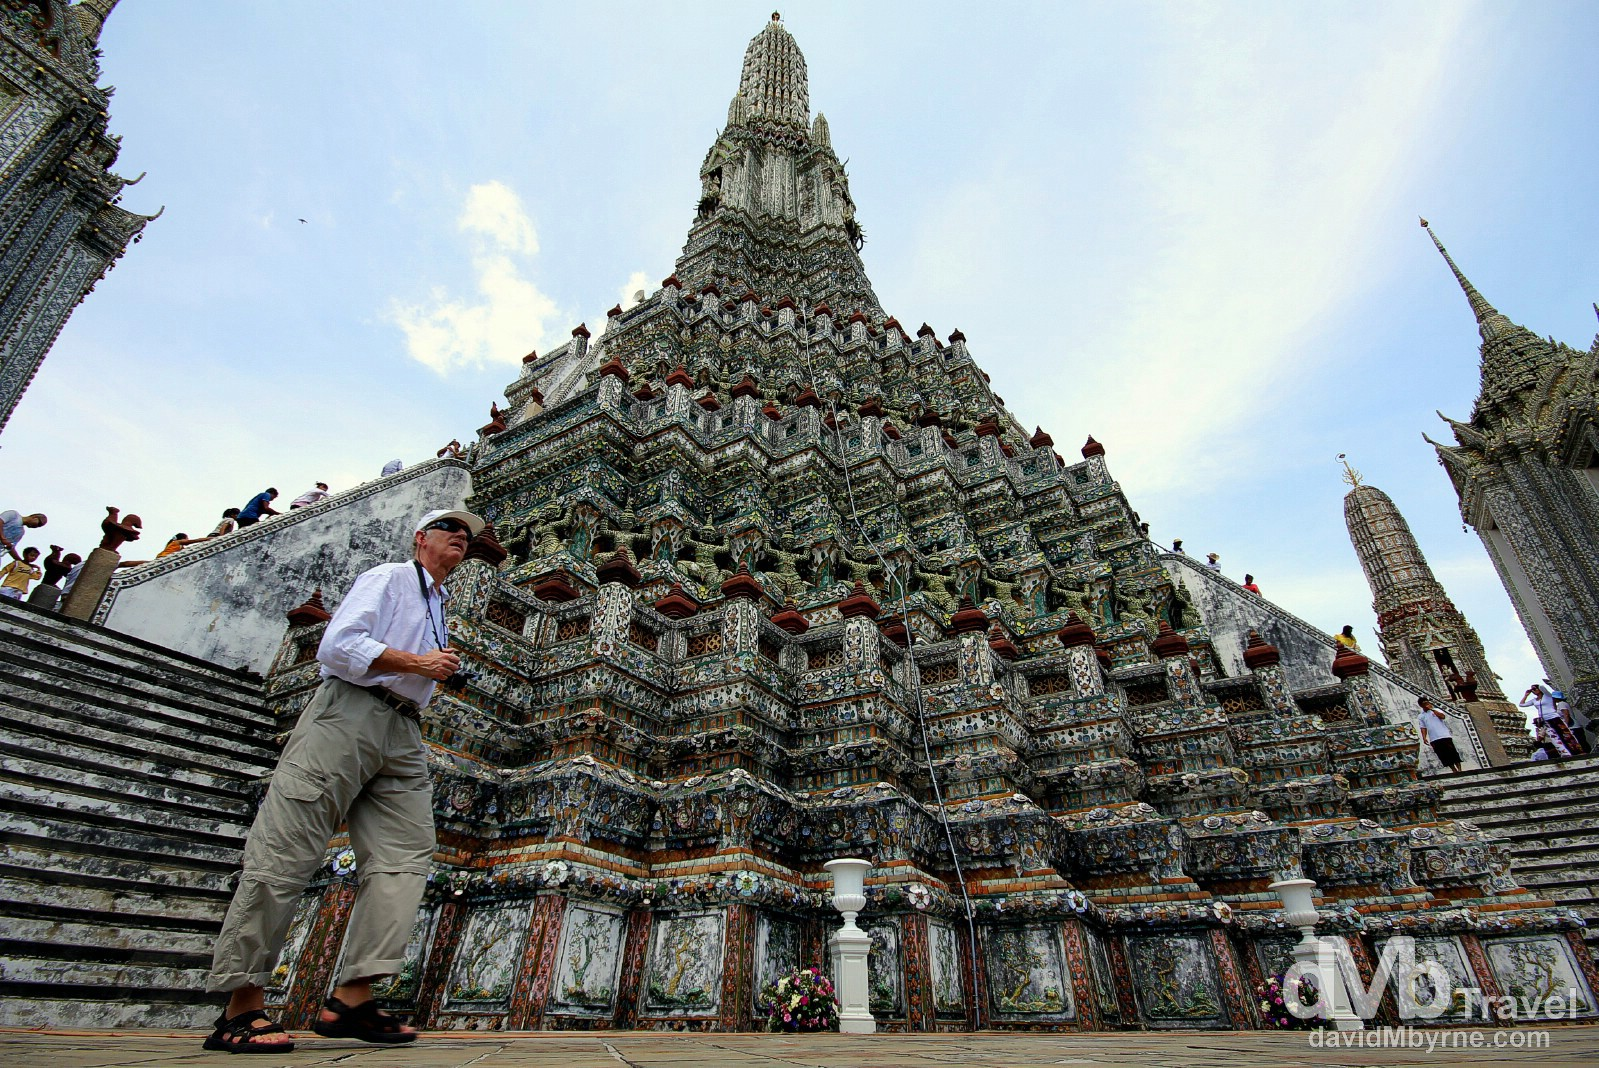 A wide-angle shot of the massive central prang (stupa) of Wat Arun, Bangkok, Thailand. March 7th 2012. This was one of those moments when I was glad I had a wide-angle lens with me; if I didn't I probably wouldn't have even bothered to try photograph this, the massive central stupa of Wat Arun. The stupa is a massive, multi-tiered, wedding cake-esque tower decorated by - rather bizarrely - seashells & pieces of porcelain. The central stupa is surrounded by 4 smaller stupas, two of which appear here to be - thanks to the wide-angle - almost falling in on the central tower. It's a mighty impressive sight & this image really doesn't do it justice.